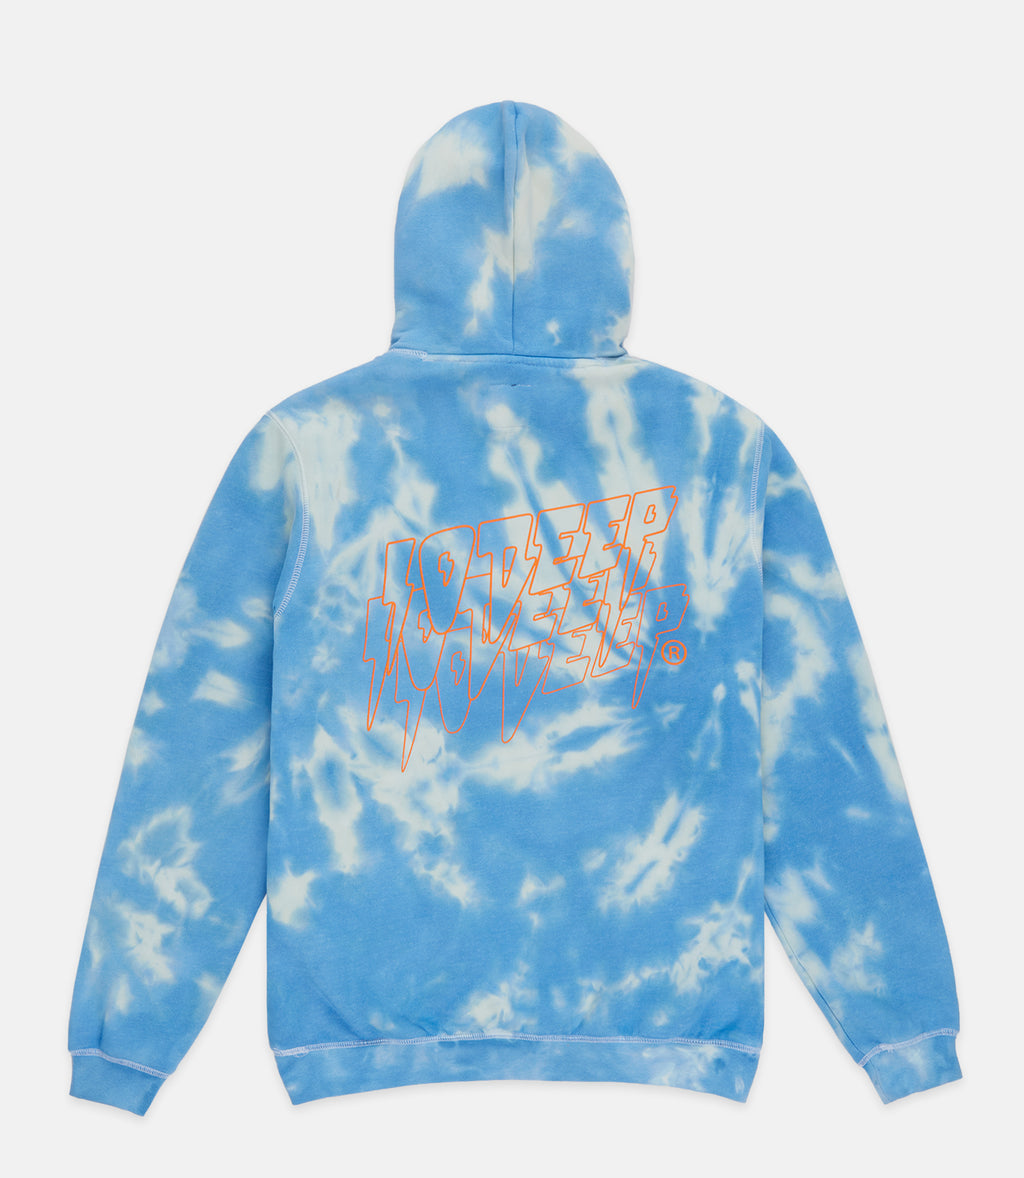 10Deep - Sound & Fury Tie Dye Men's Hoodie, Blue